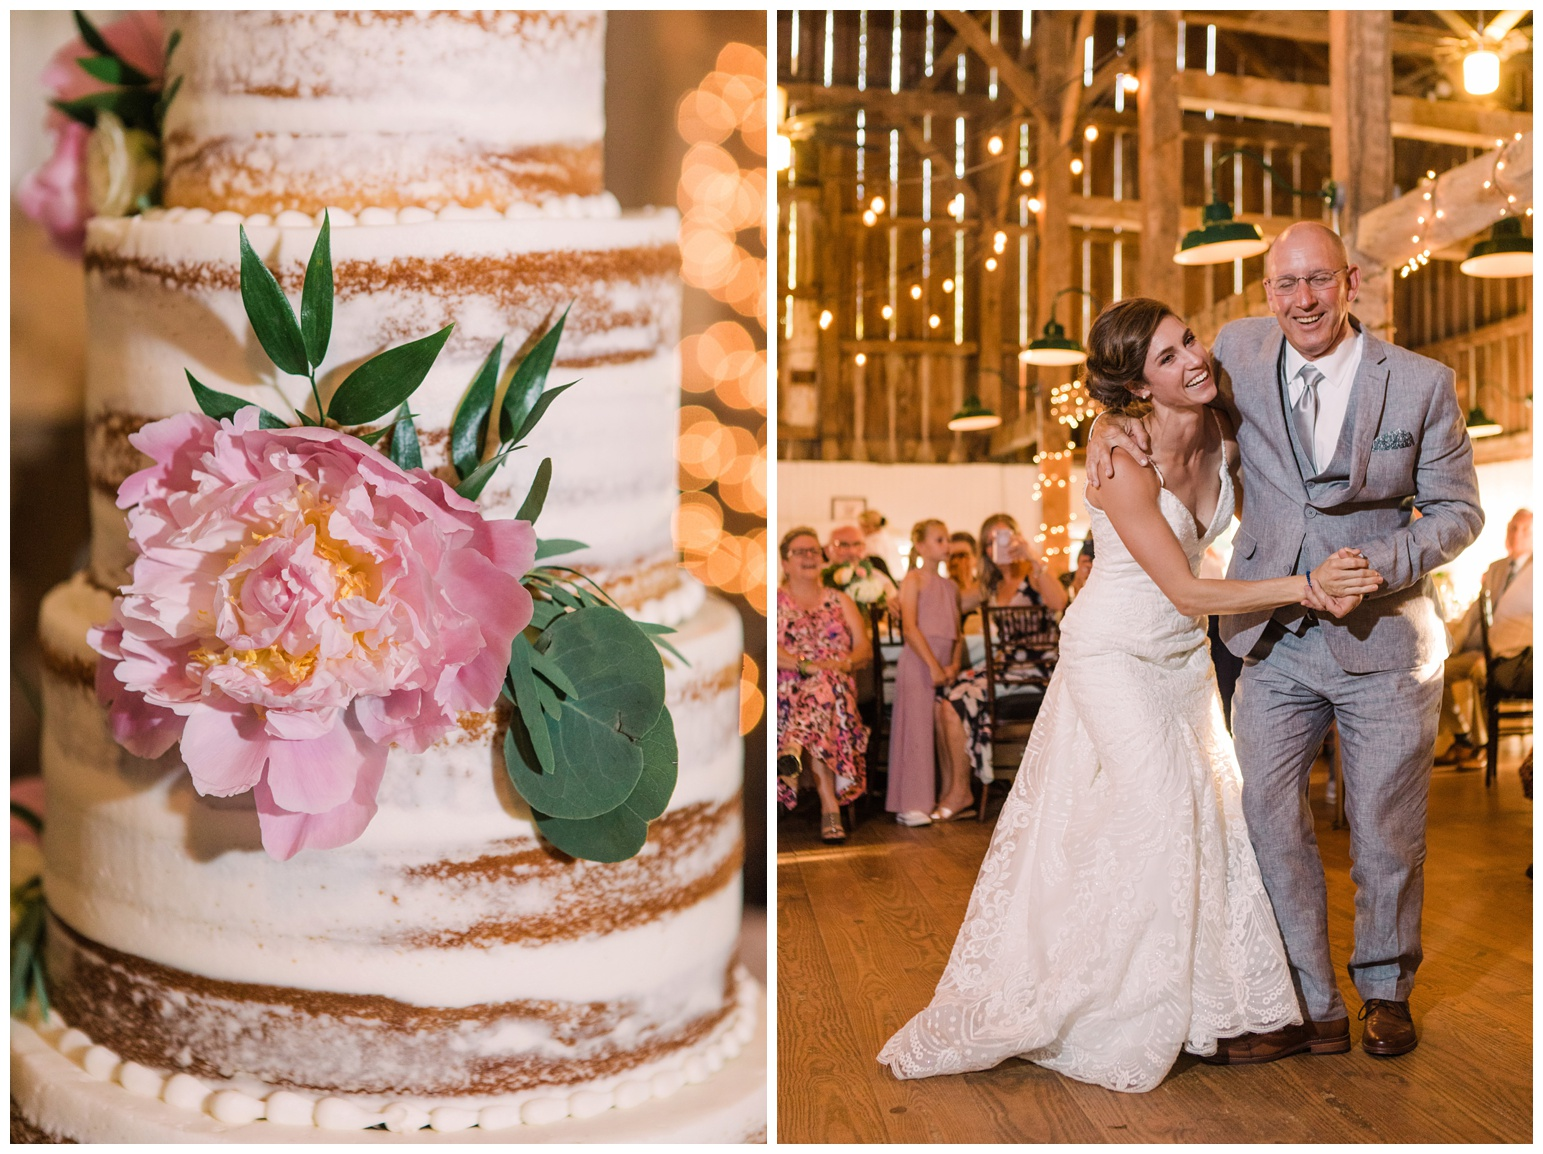 real wedding at worsell manor in the summer - warwick md - now featured on My Eastern Shore Wedding - coastal - sea - nautical - eastern shore - inspired wedding ideas and inspo - photo of wedding cake with pink peony floral decor and bride and father dancing in barn reception - rustic wedding decor theme